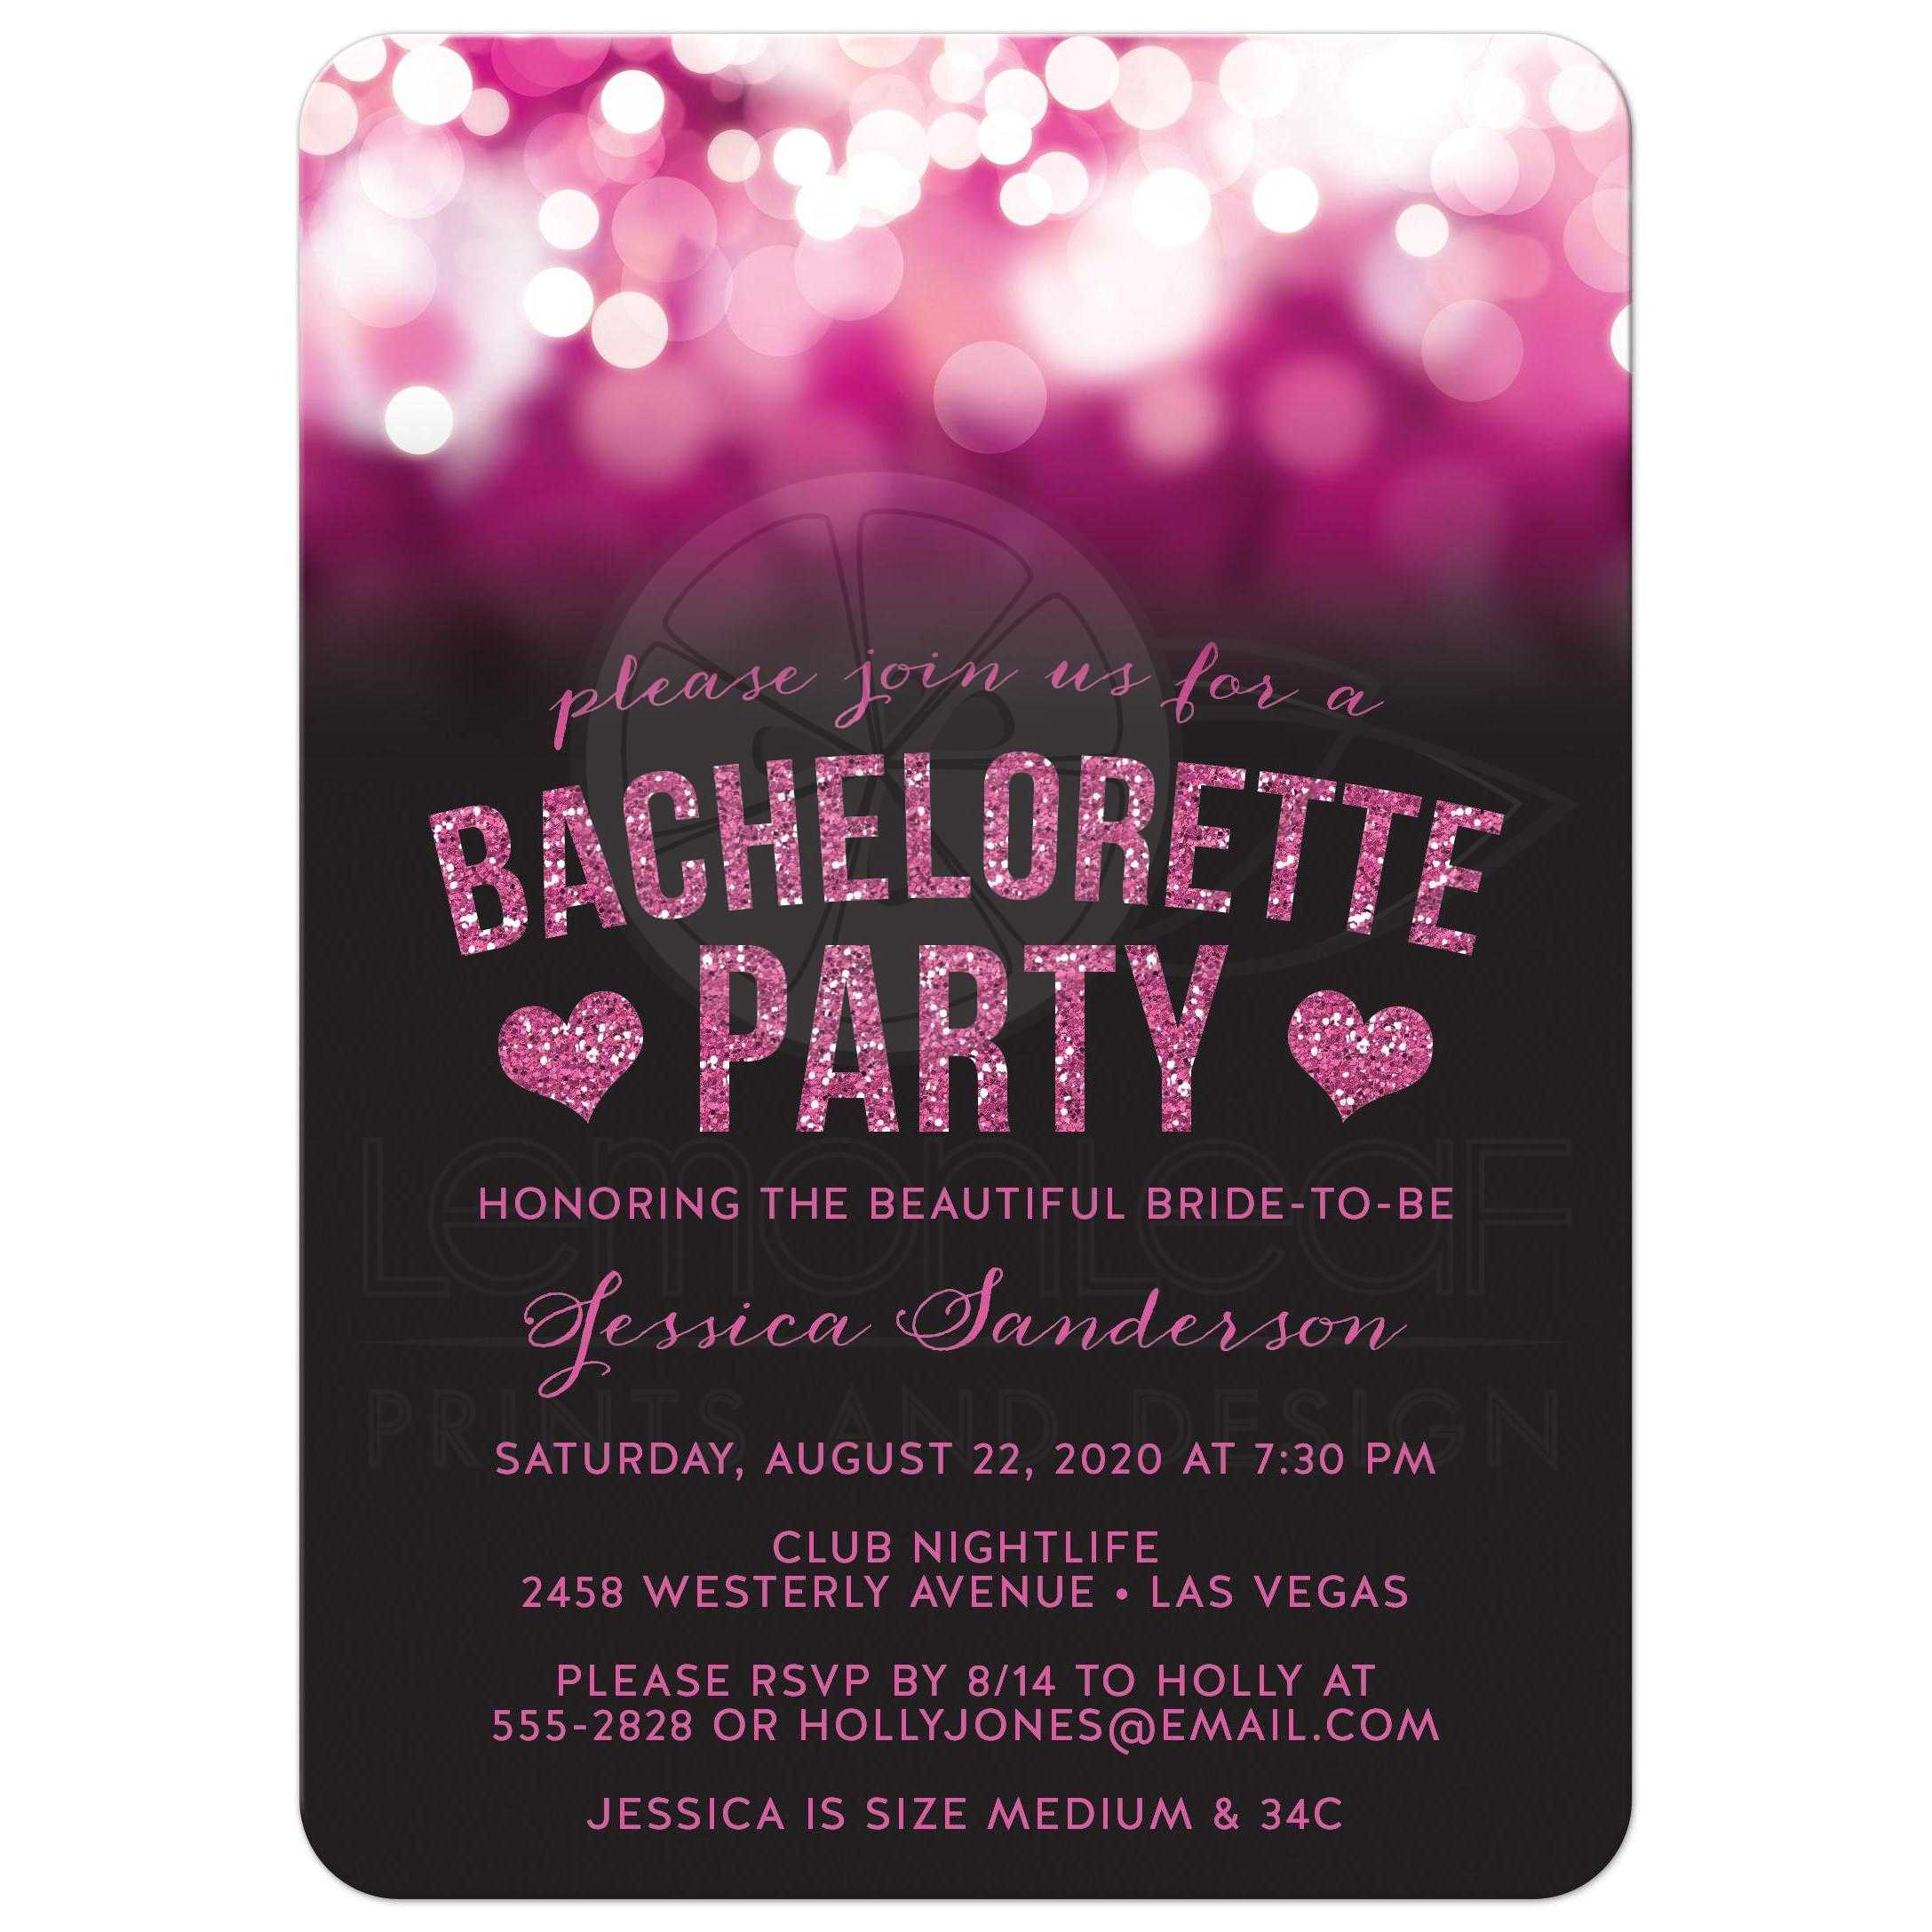 Bachelorette Party Invitations Hot Pink Party Lights